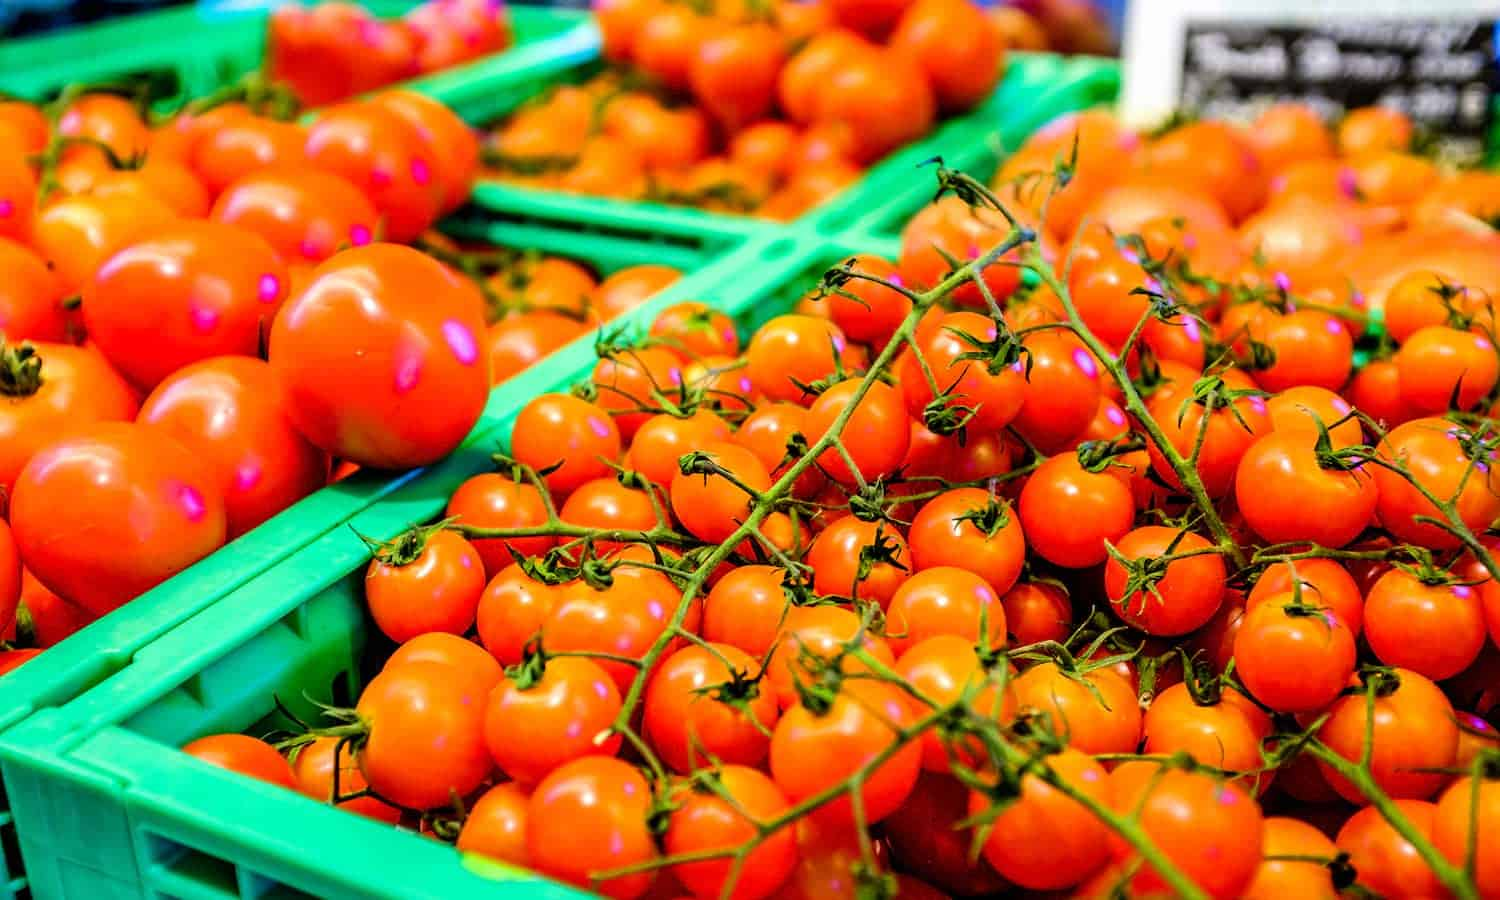 GAIN is joining with local governments and businesses to prevent post harvest loss and improve global access to nutrition—using tomatoes.